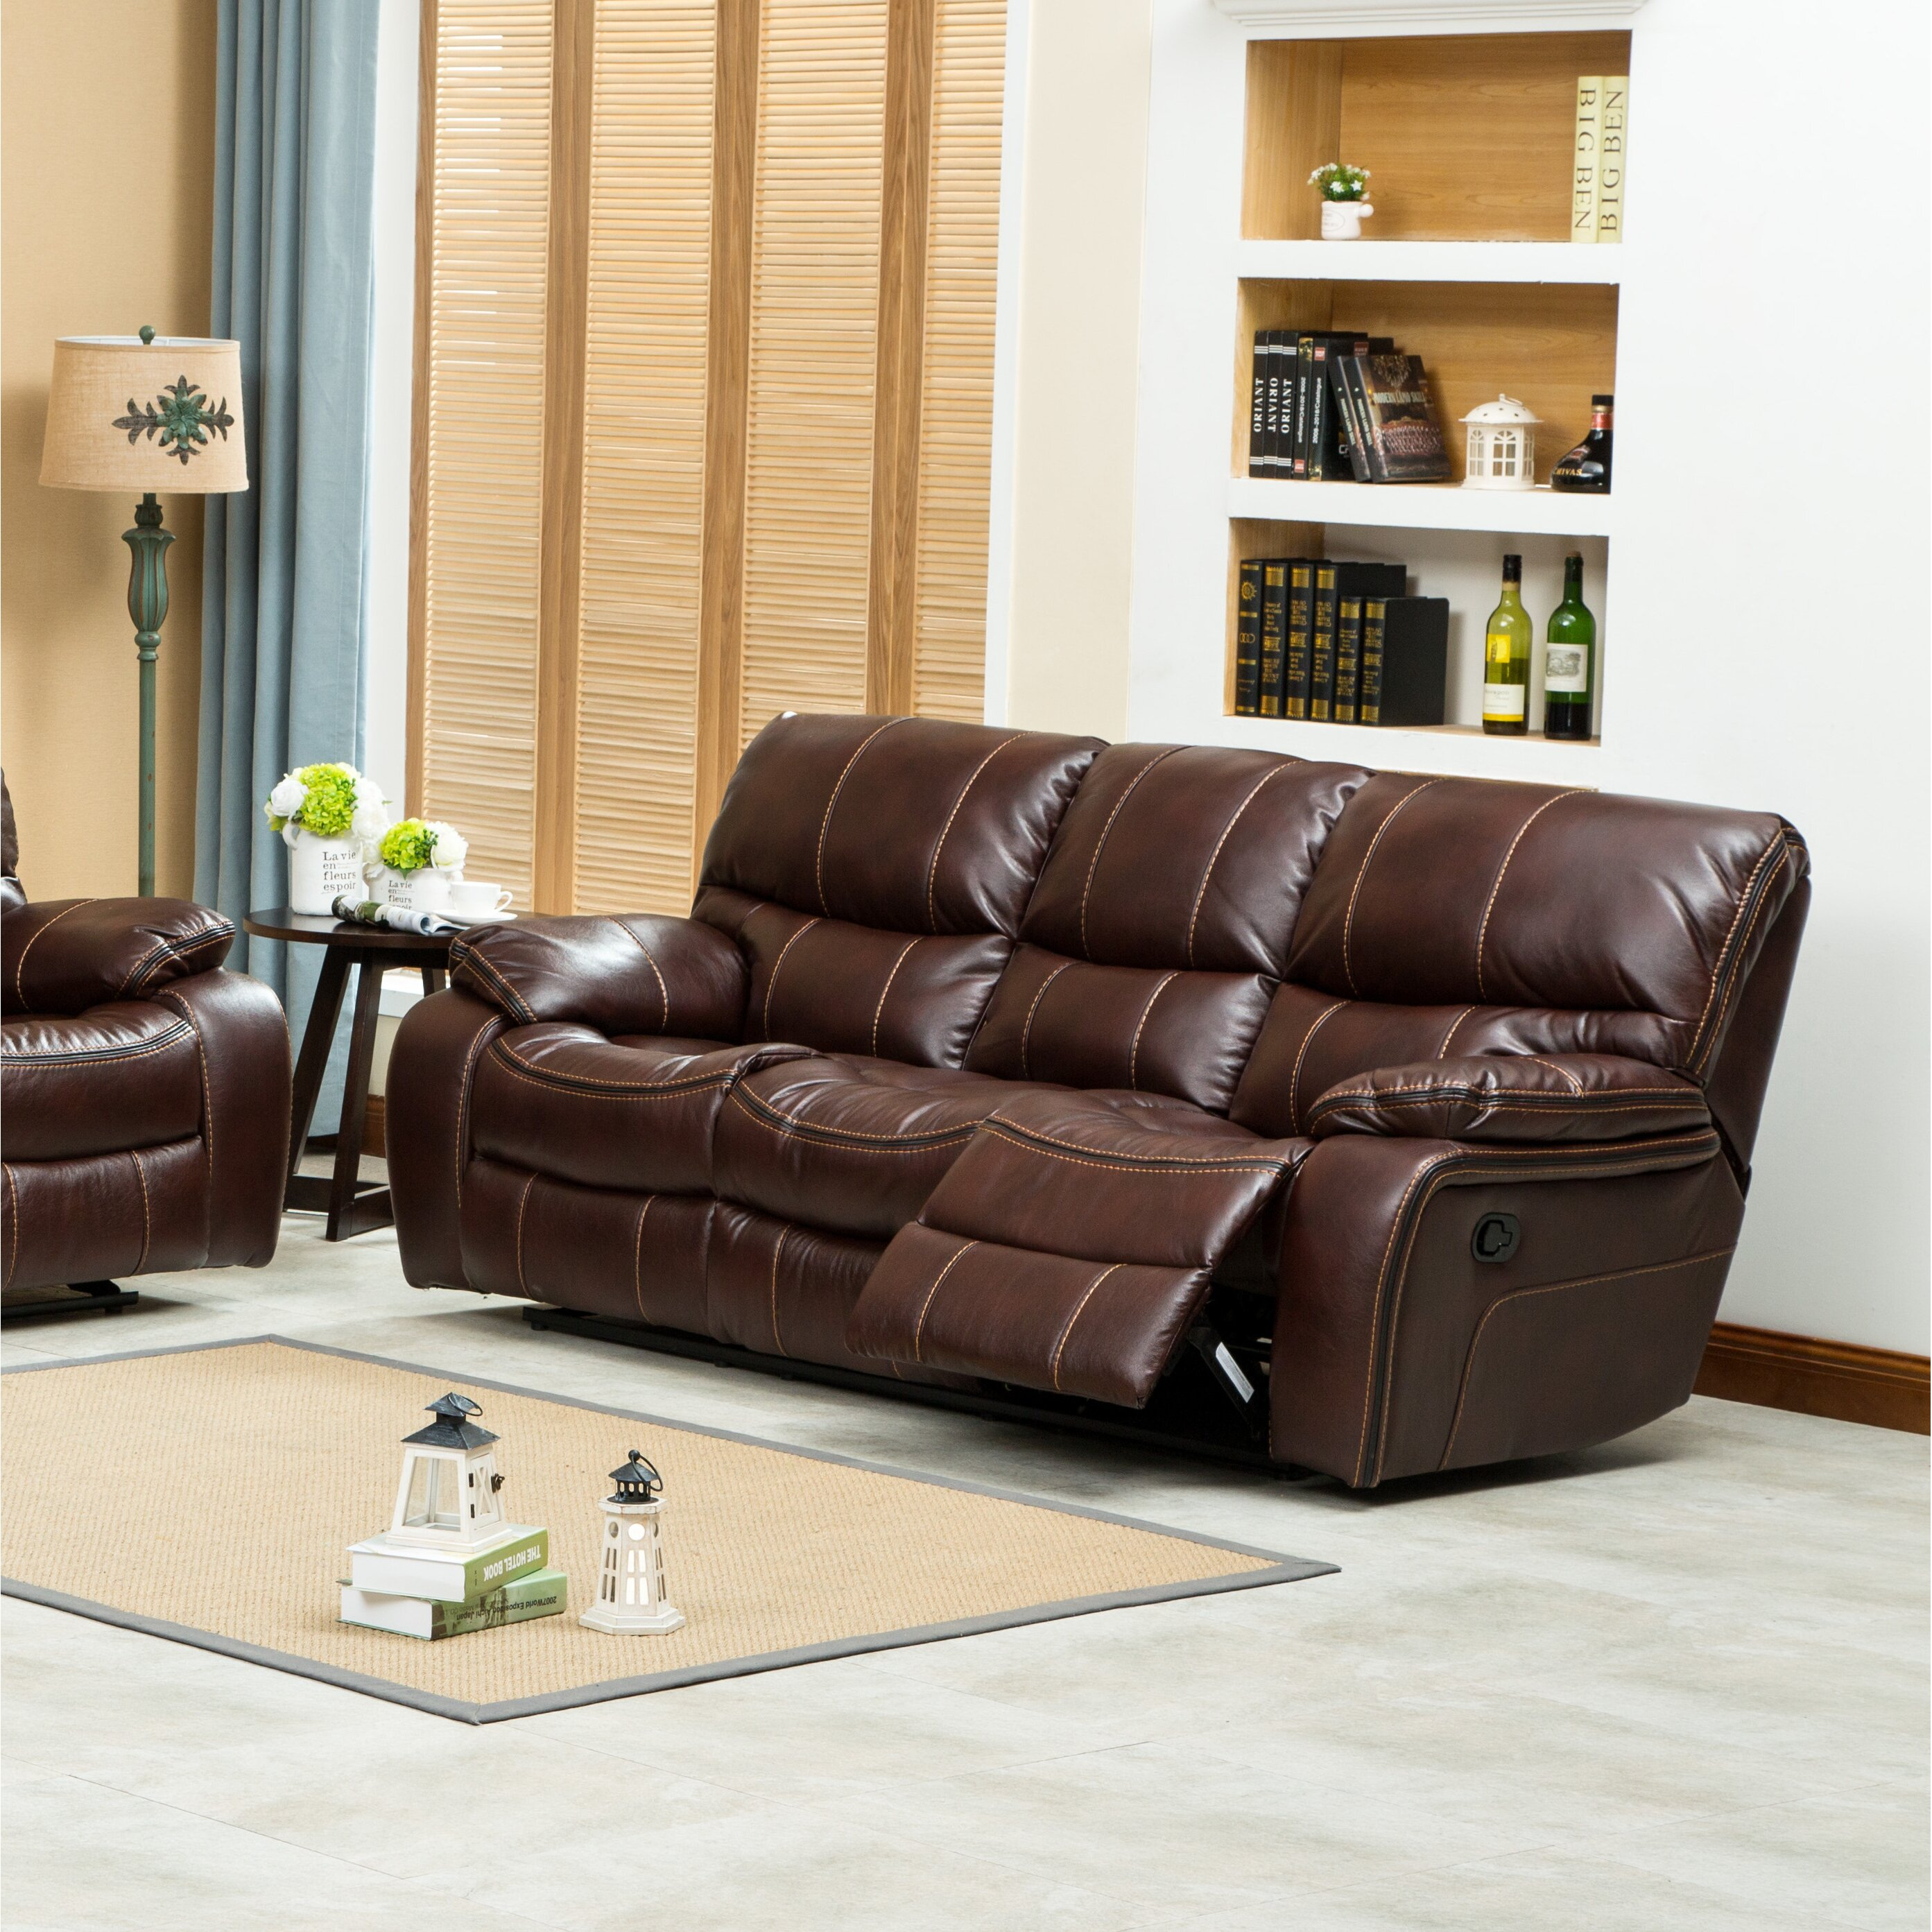 Leather Living Room Sets For Roundhill Furniture Ewa 3 Piece Reclining Leather Living Room Set